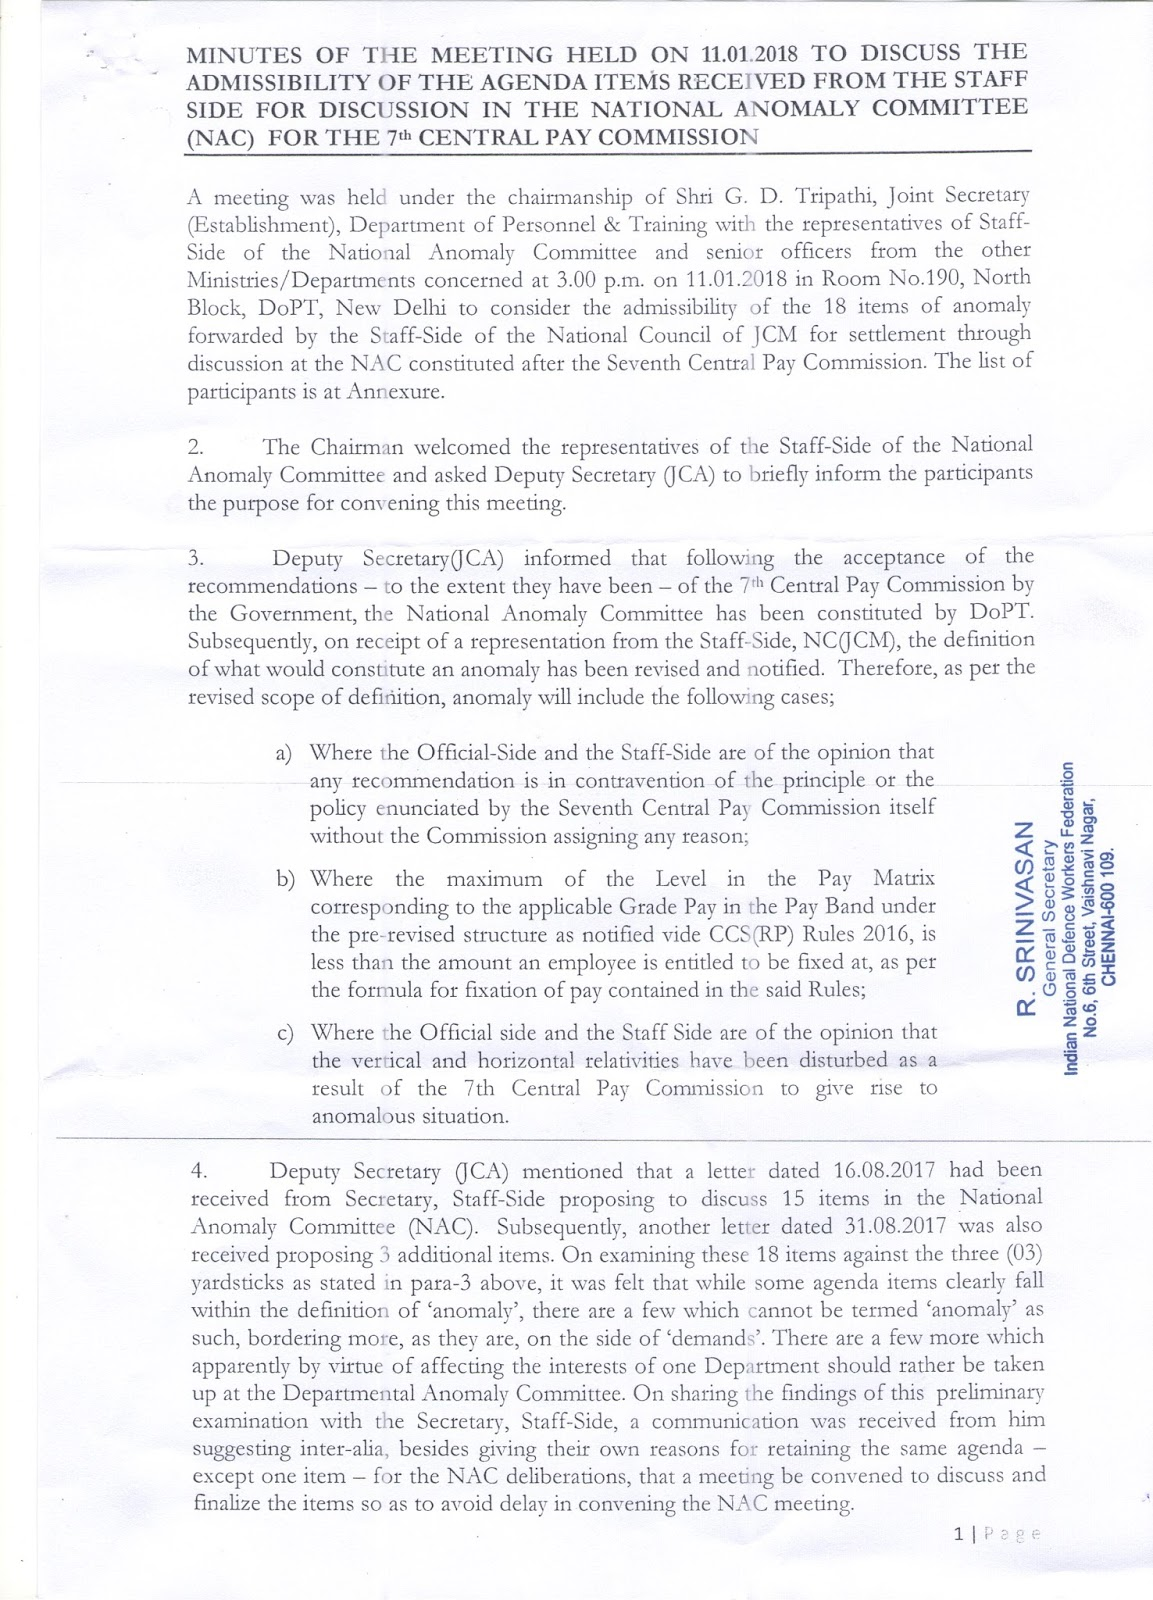 Minutes Of National Anomaly Committee Meeting